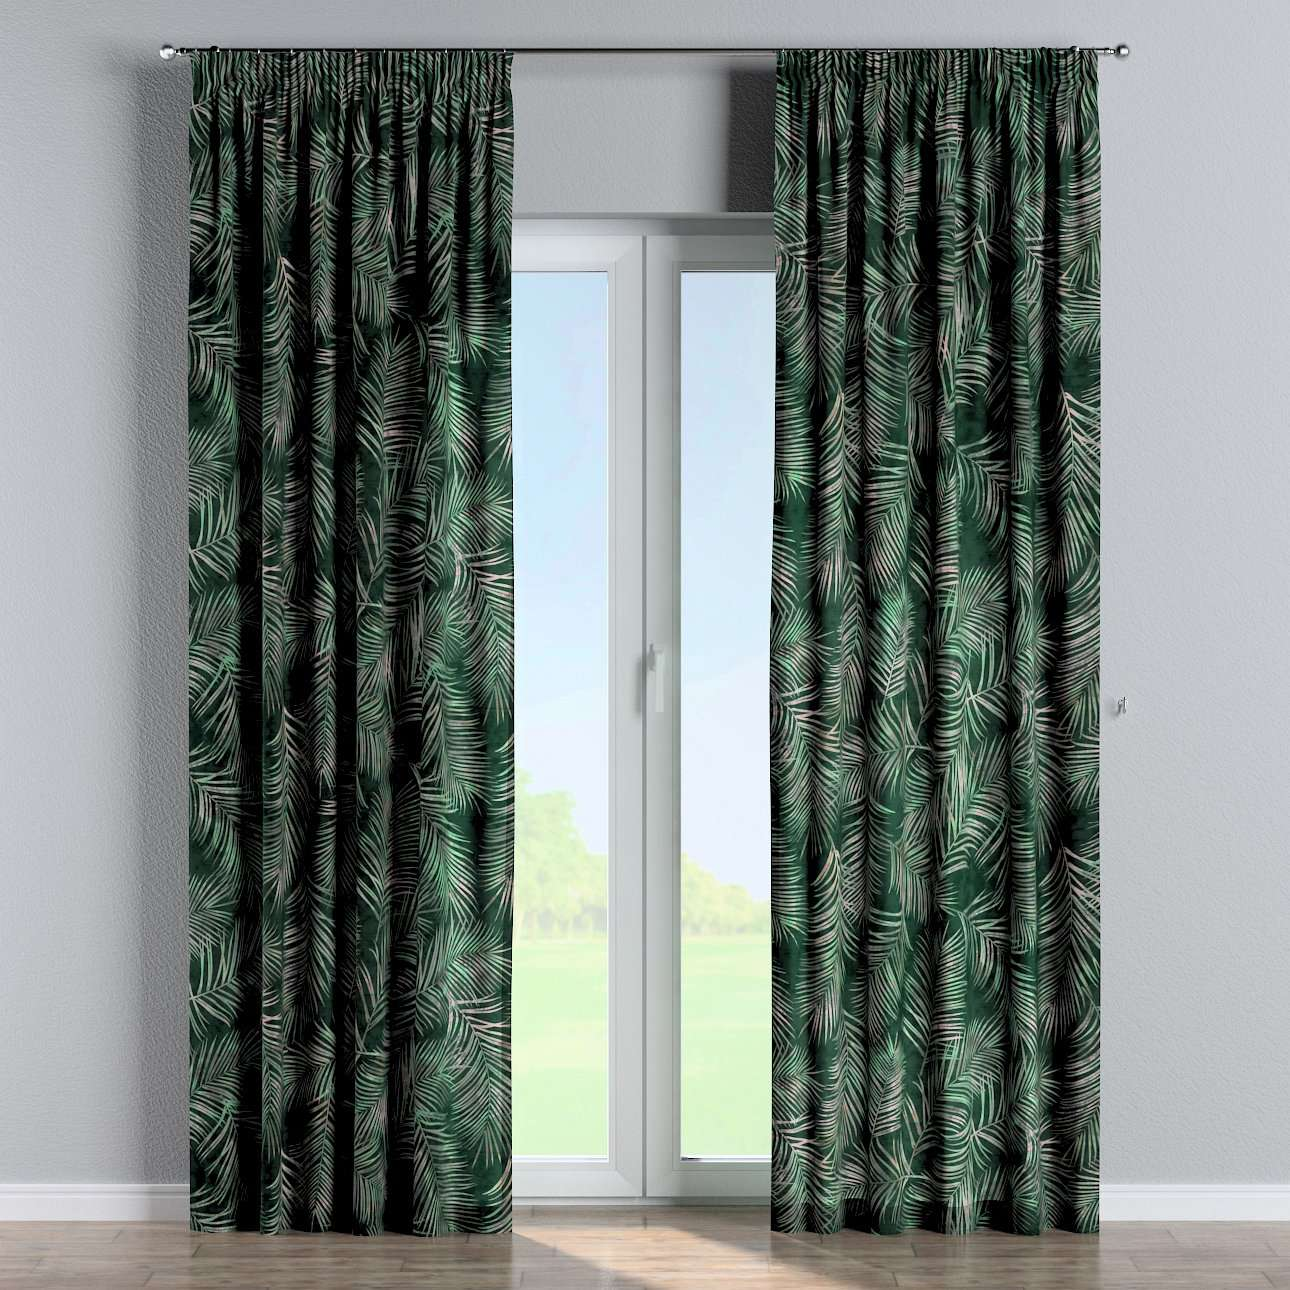 Pencil pleat curtains in collection Velvet, fabric: 704-21